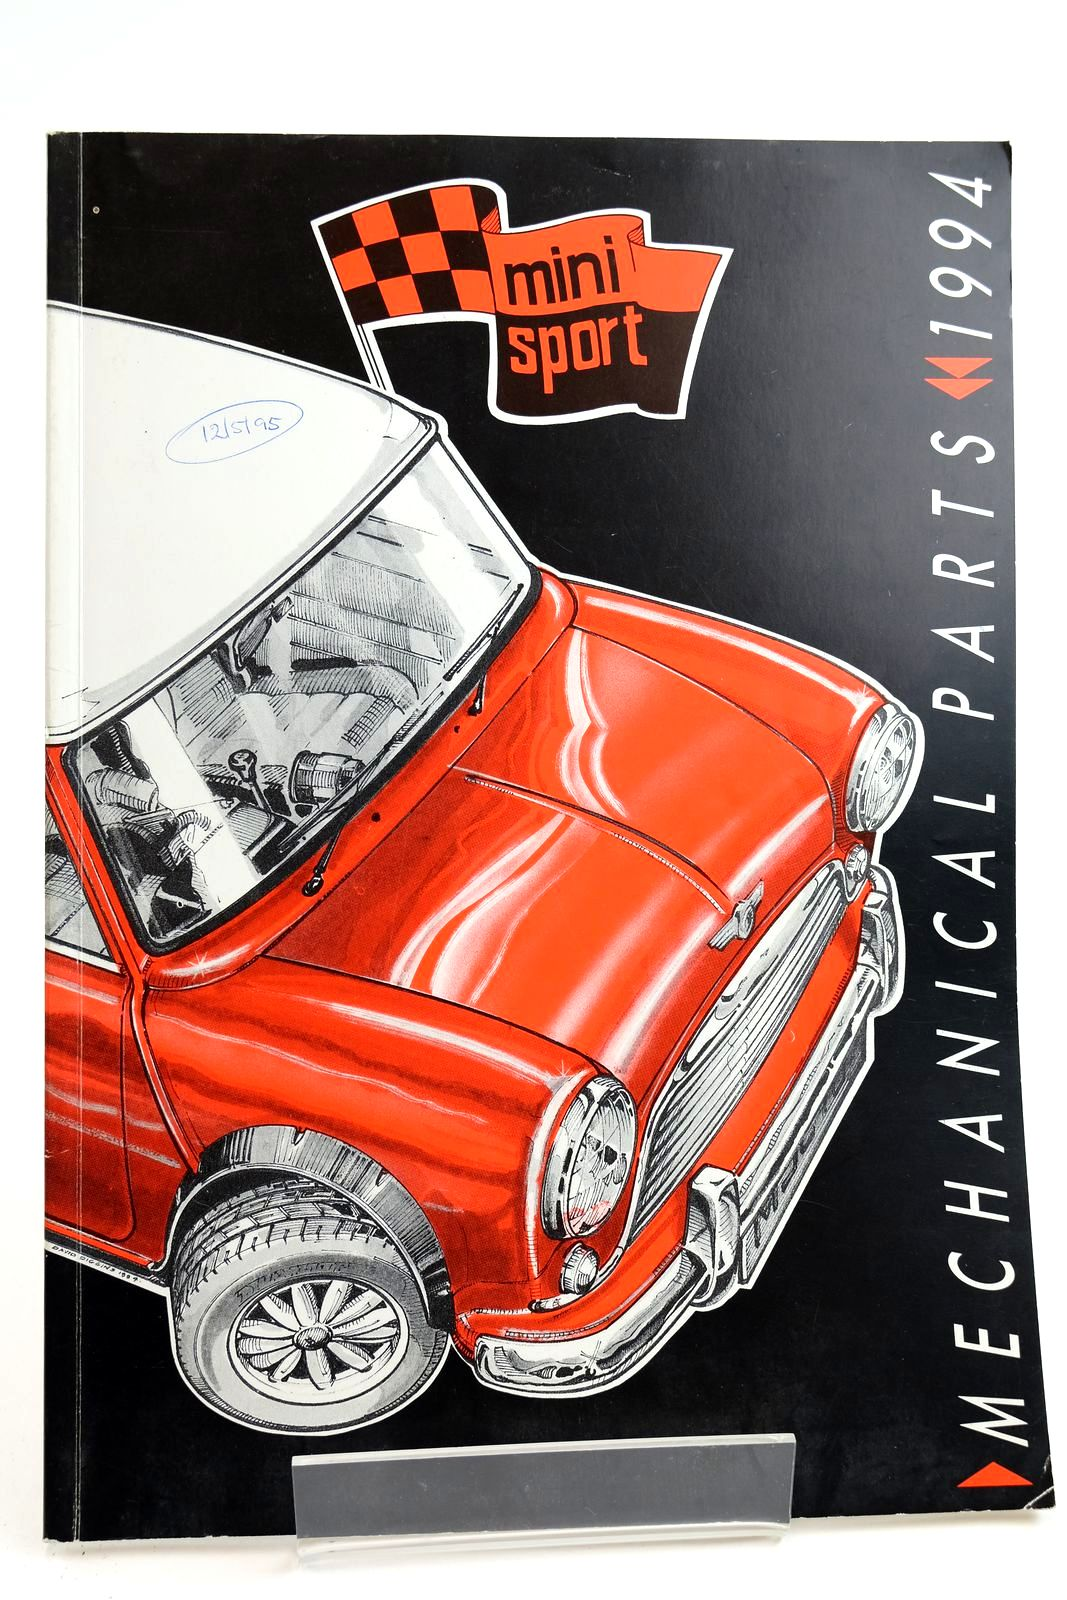 Photo of MINI MECHANICAL PARTS CATALOGUE 1959 - 1994 published by Mini Sport Ltd (STOCK CODE: 2132261)  for sale by Stella & Rose's Books